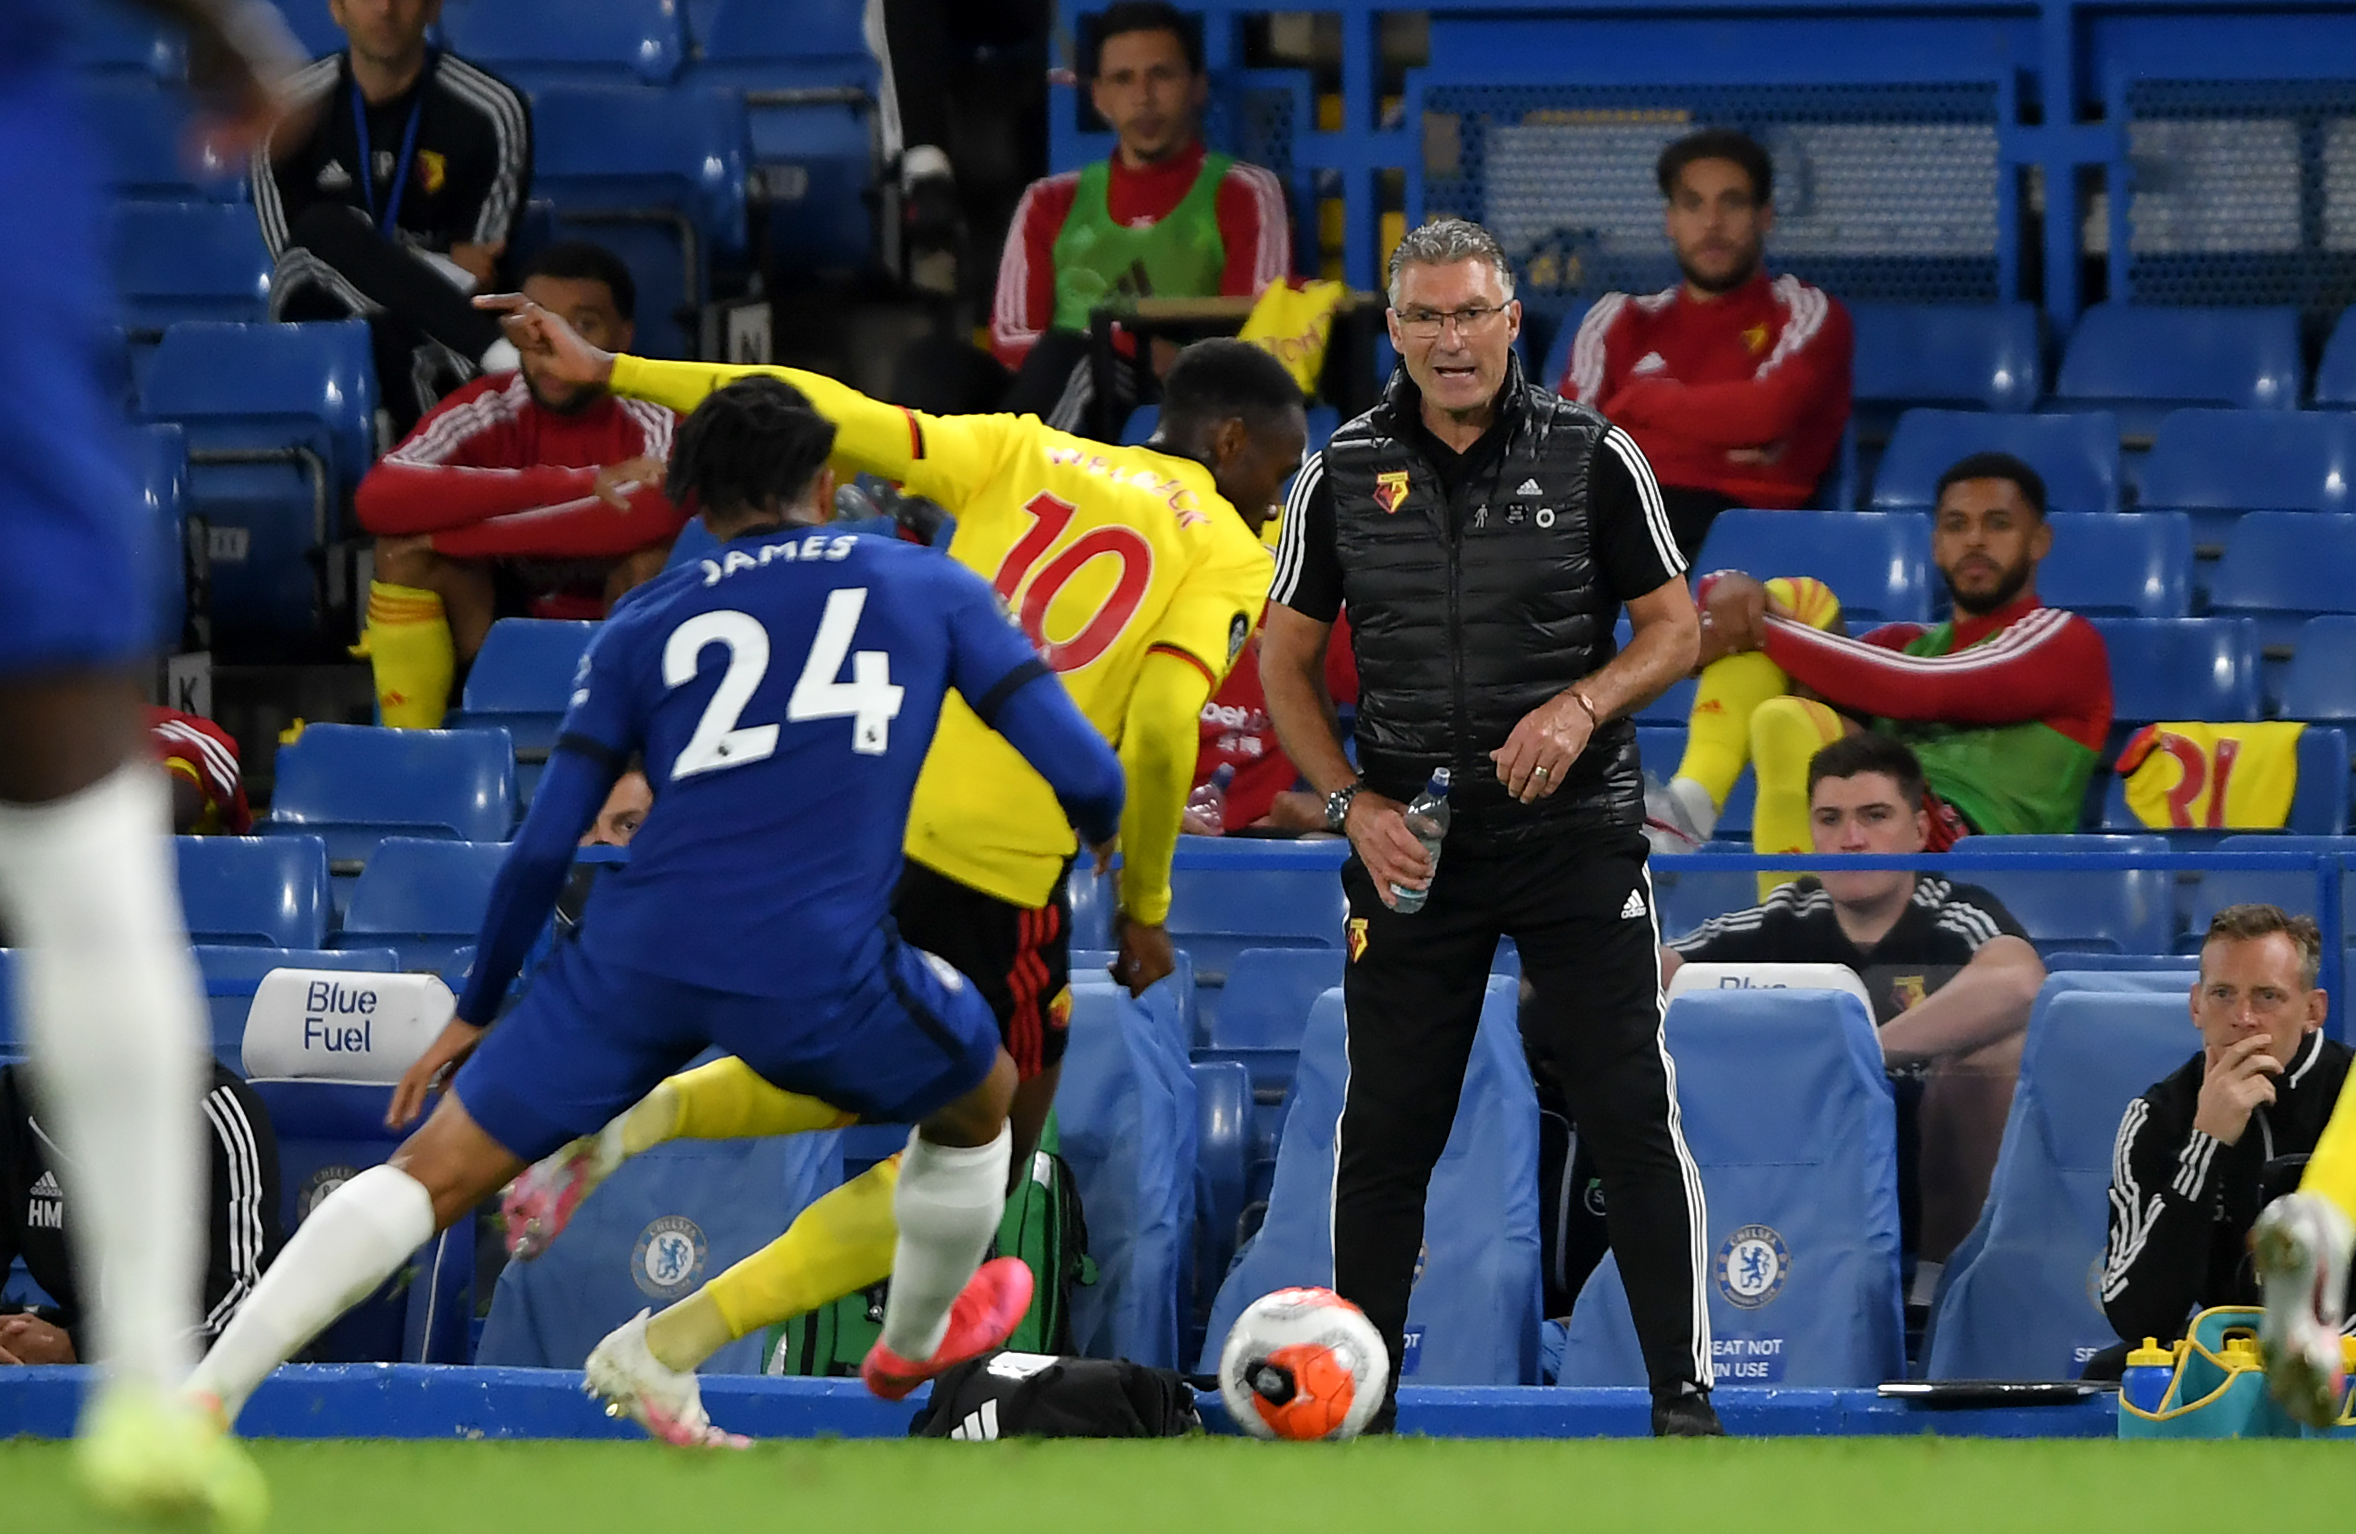 Watford manager Nigel Pearson watches from the touchline during the Premier League match at Stamford Bridge, London.